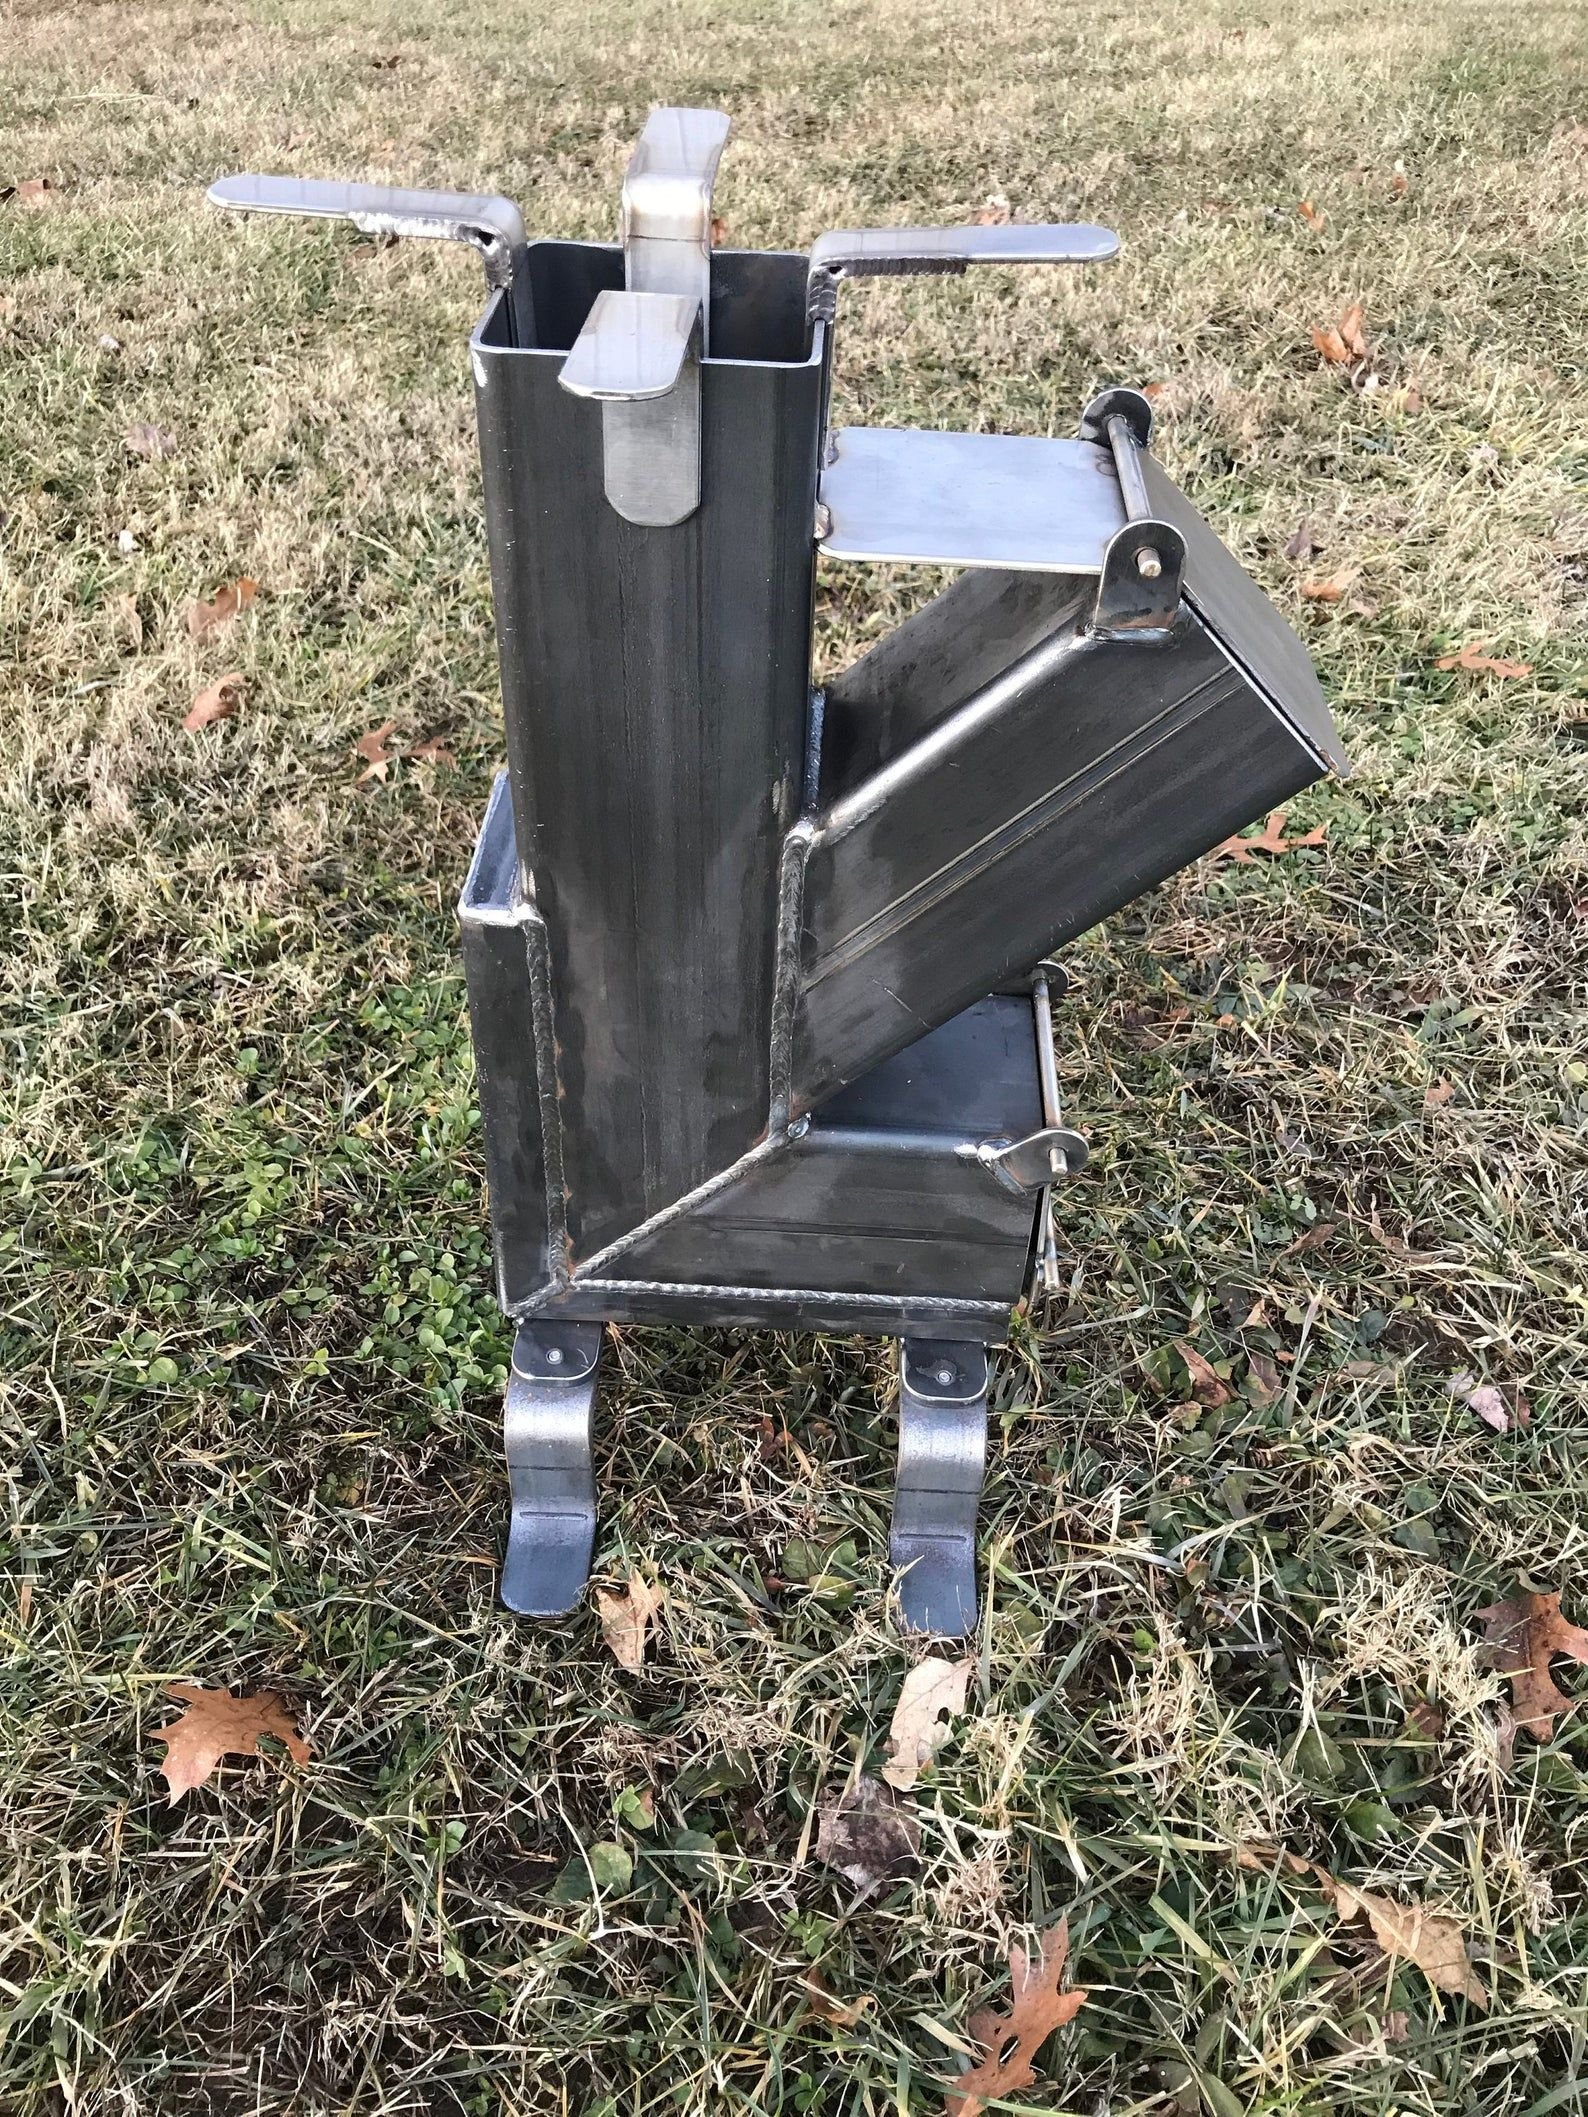 Stainless Steel Accessorized Rocket Stove Rocket Stove Design